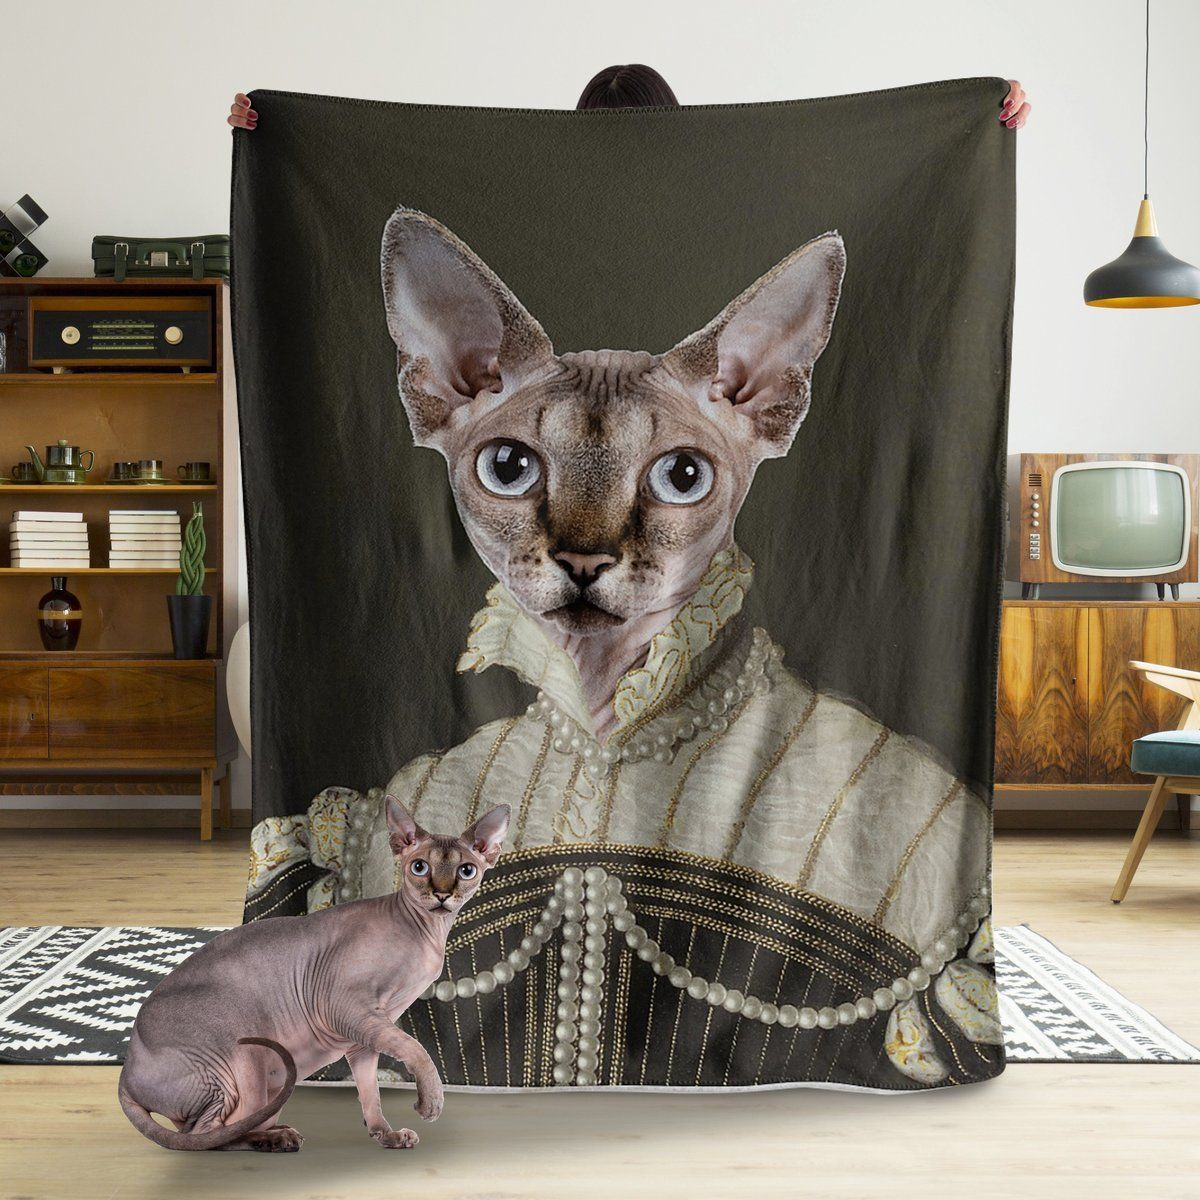 Funny Blanket - A Funny Cat Customized Photo Fleece Blanket